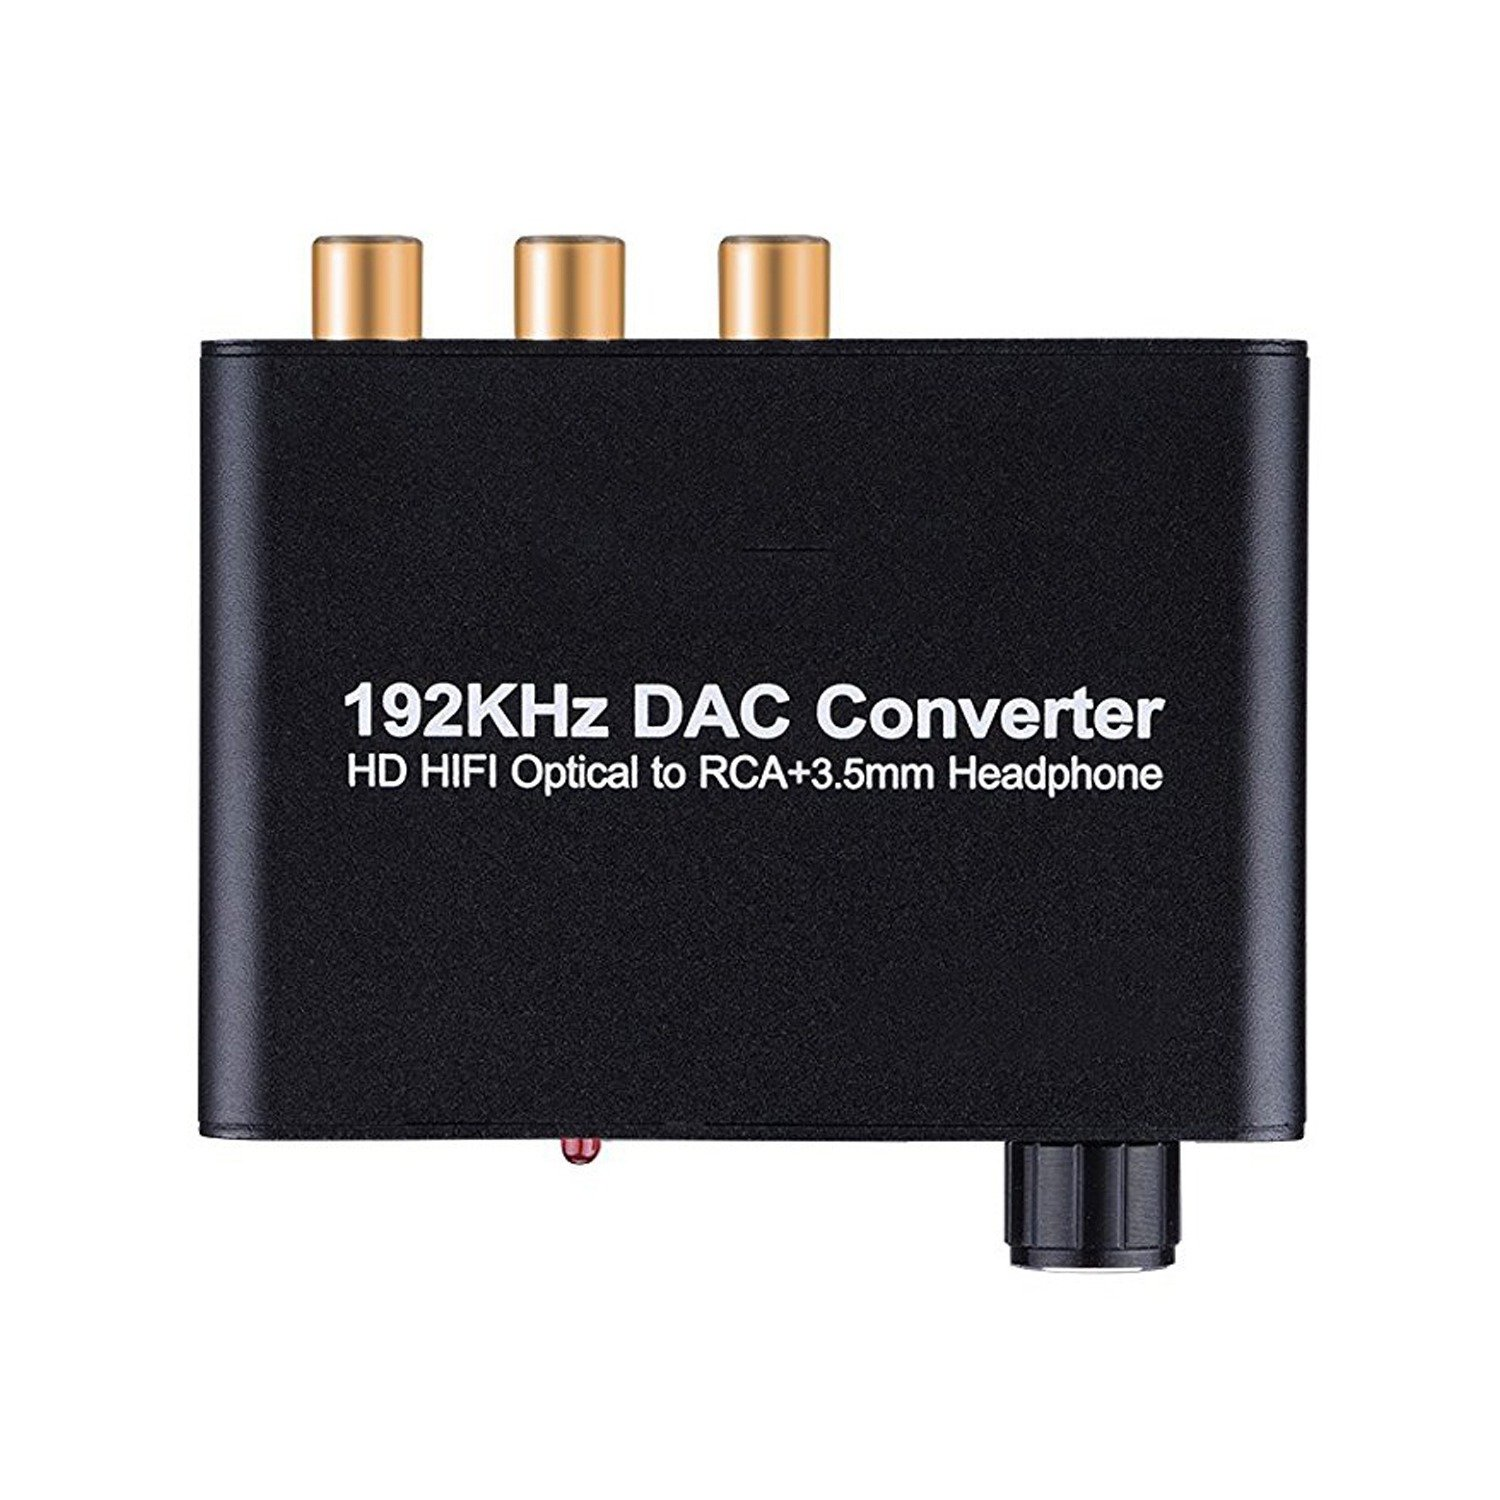 SODIAL Digital to Analog Converter 192kHz DAC Supports Volume control Digital Coaxial SPDIF to Analog Stereo L/R RCA 3.5mm Jack Audio Adapter for PS3 XBox PS4 Cinema Systems AV Amps by SODIAL